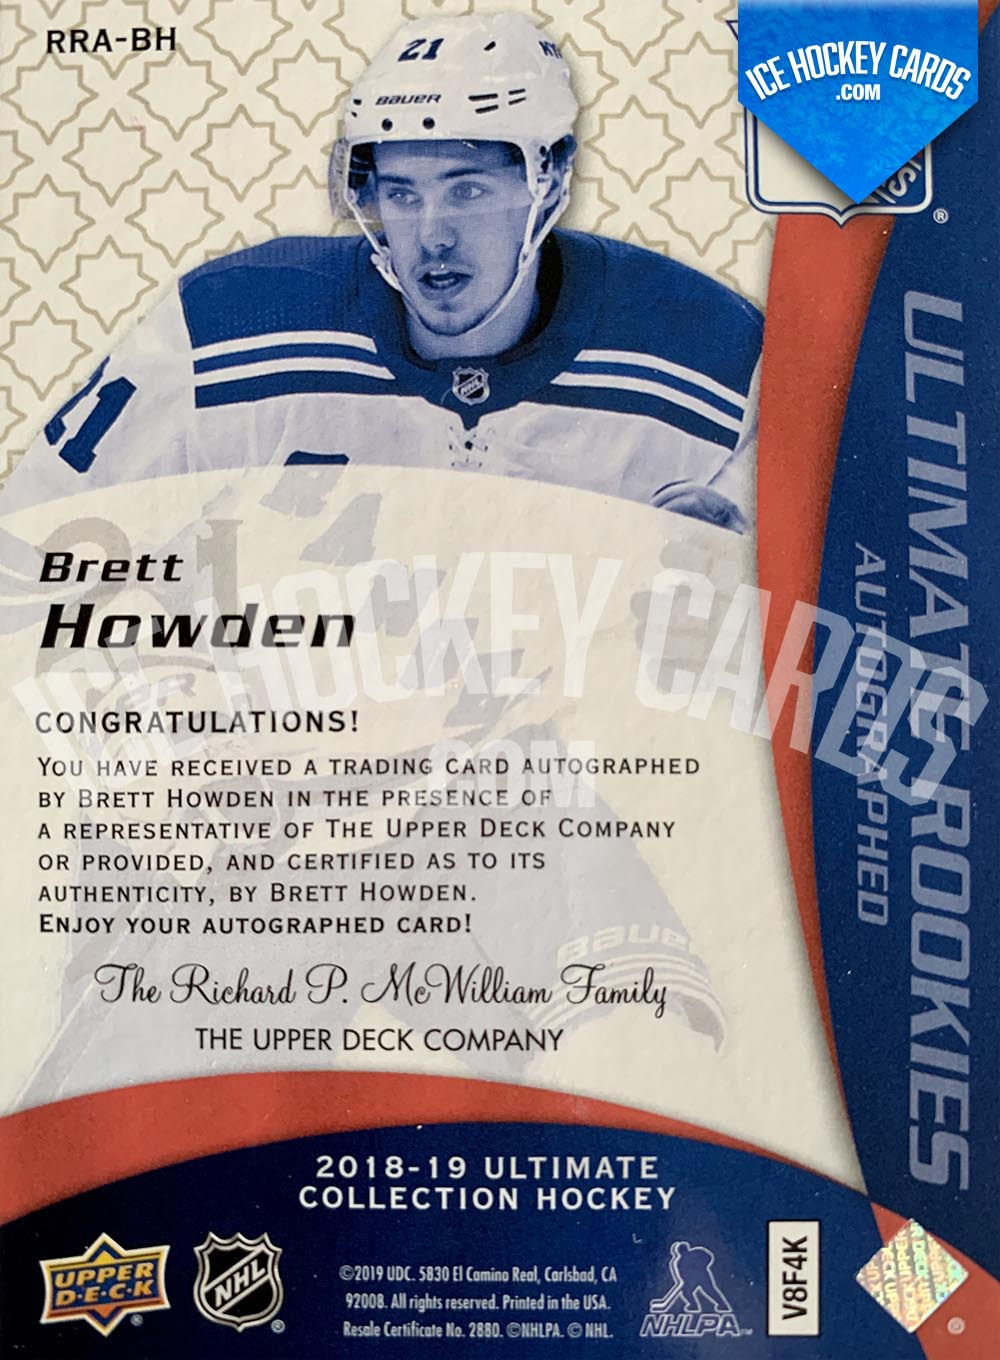 Upper-Deck-Ultimate-Collection-2018-19-Brett-Howden-Autographed-Ultimate-Rookies-Card-back